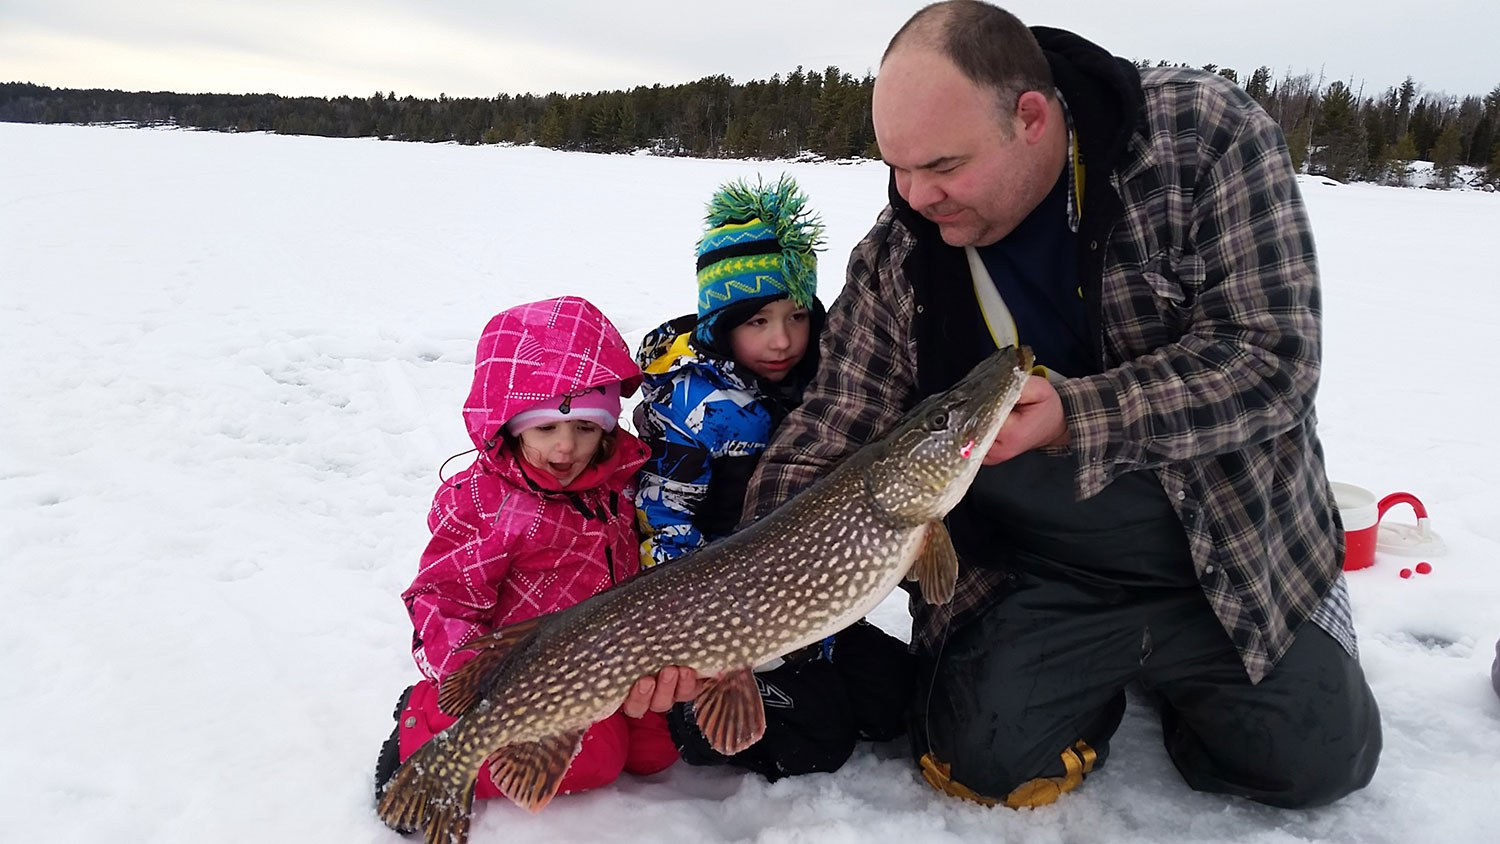 Brian Tucker on Rainy Lake with his two children holding a fish